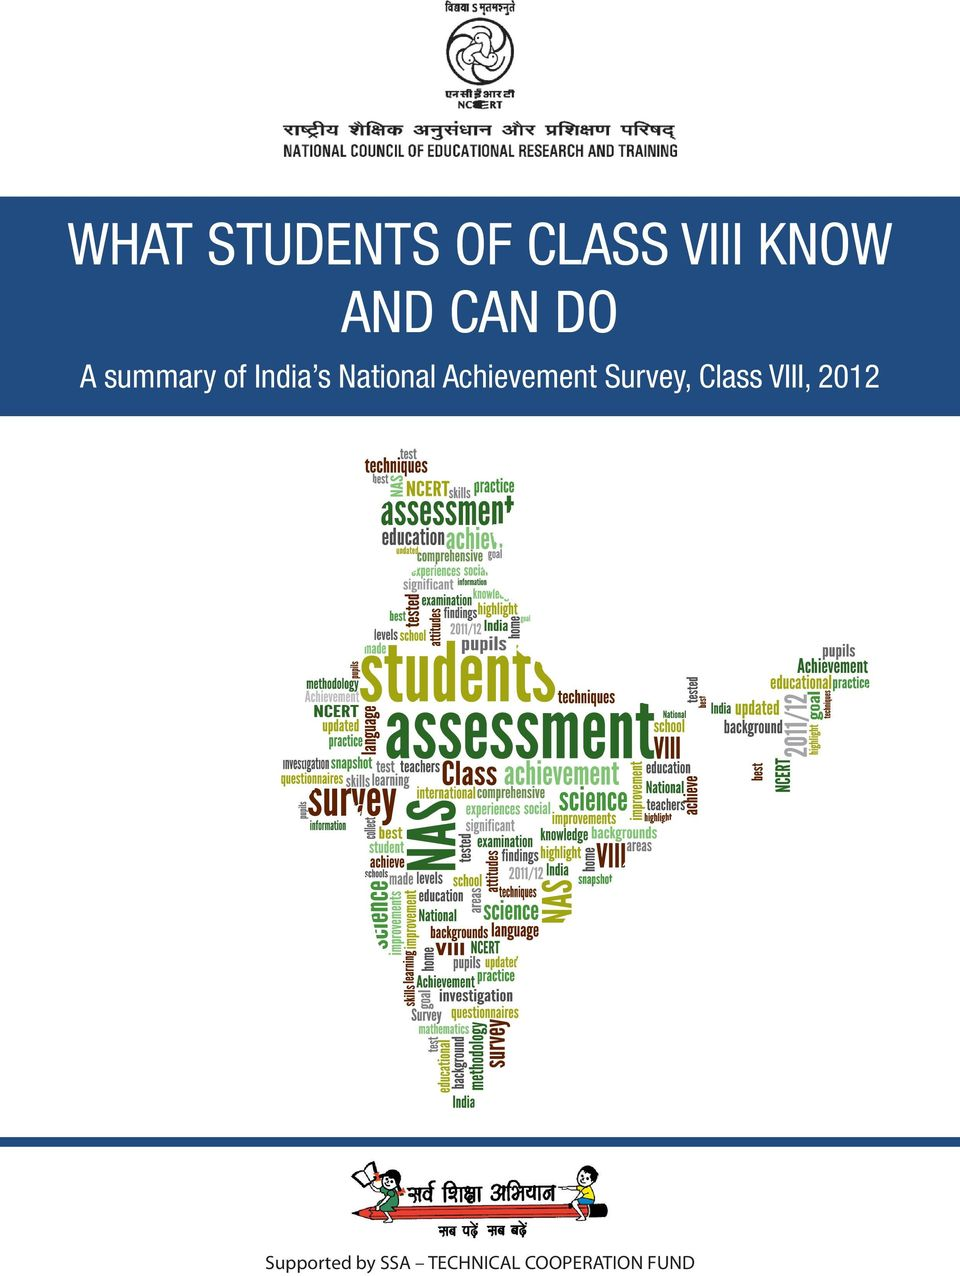 Achievement Survey, Class VIII, 2012